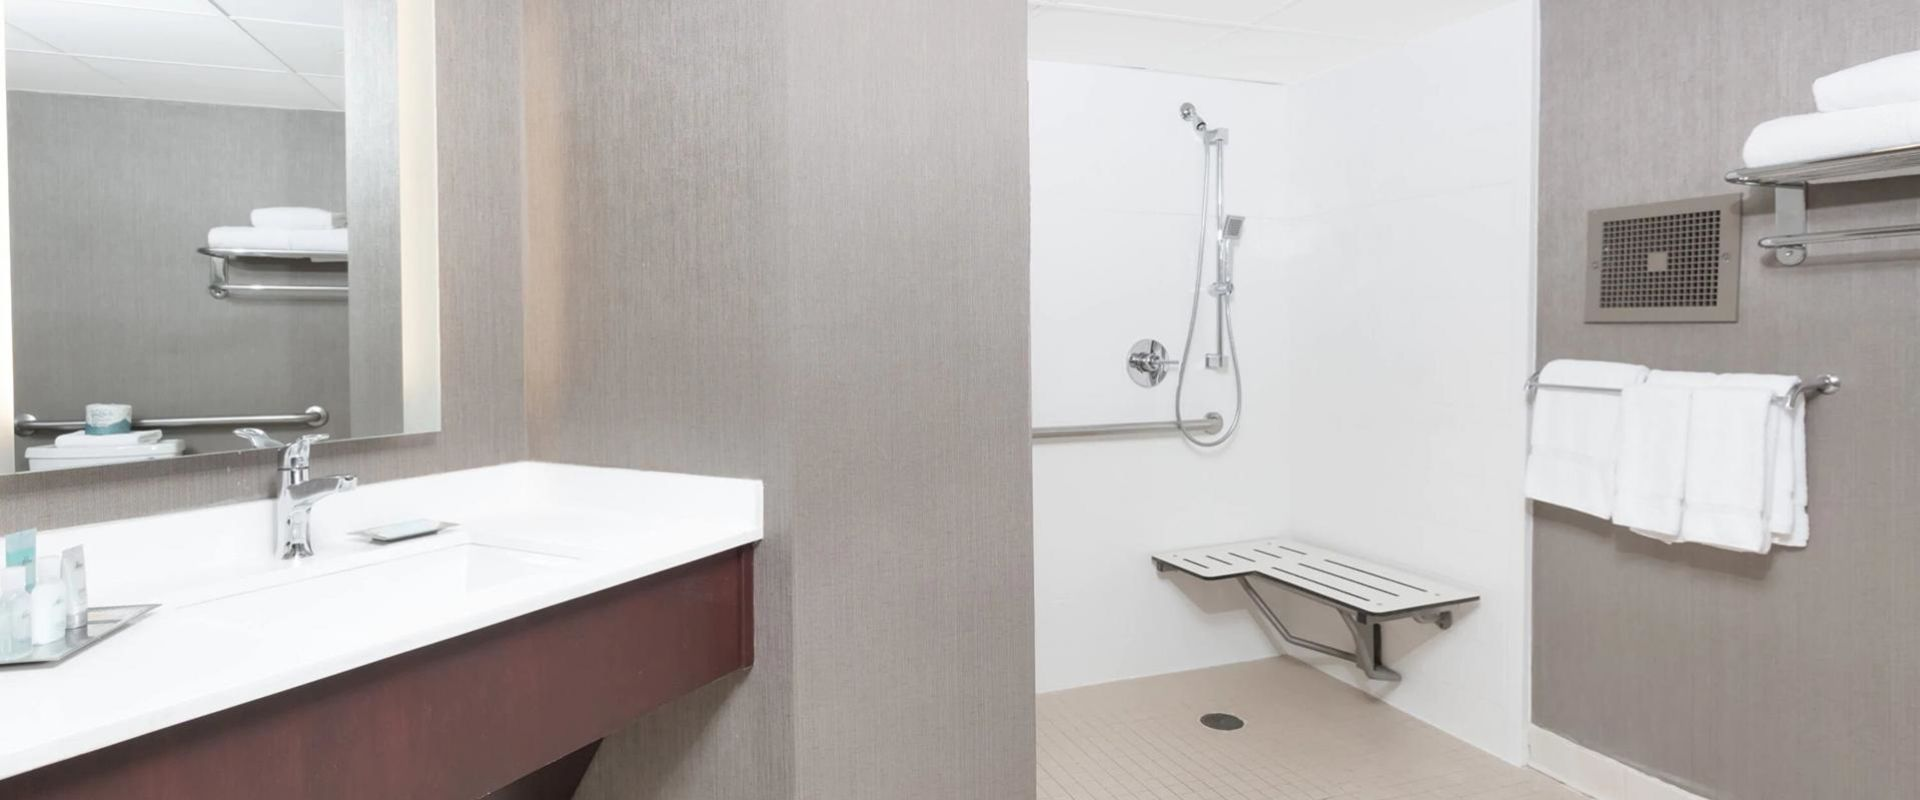 Bathroom vanity and accessible roll-in shower